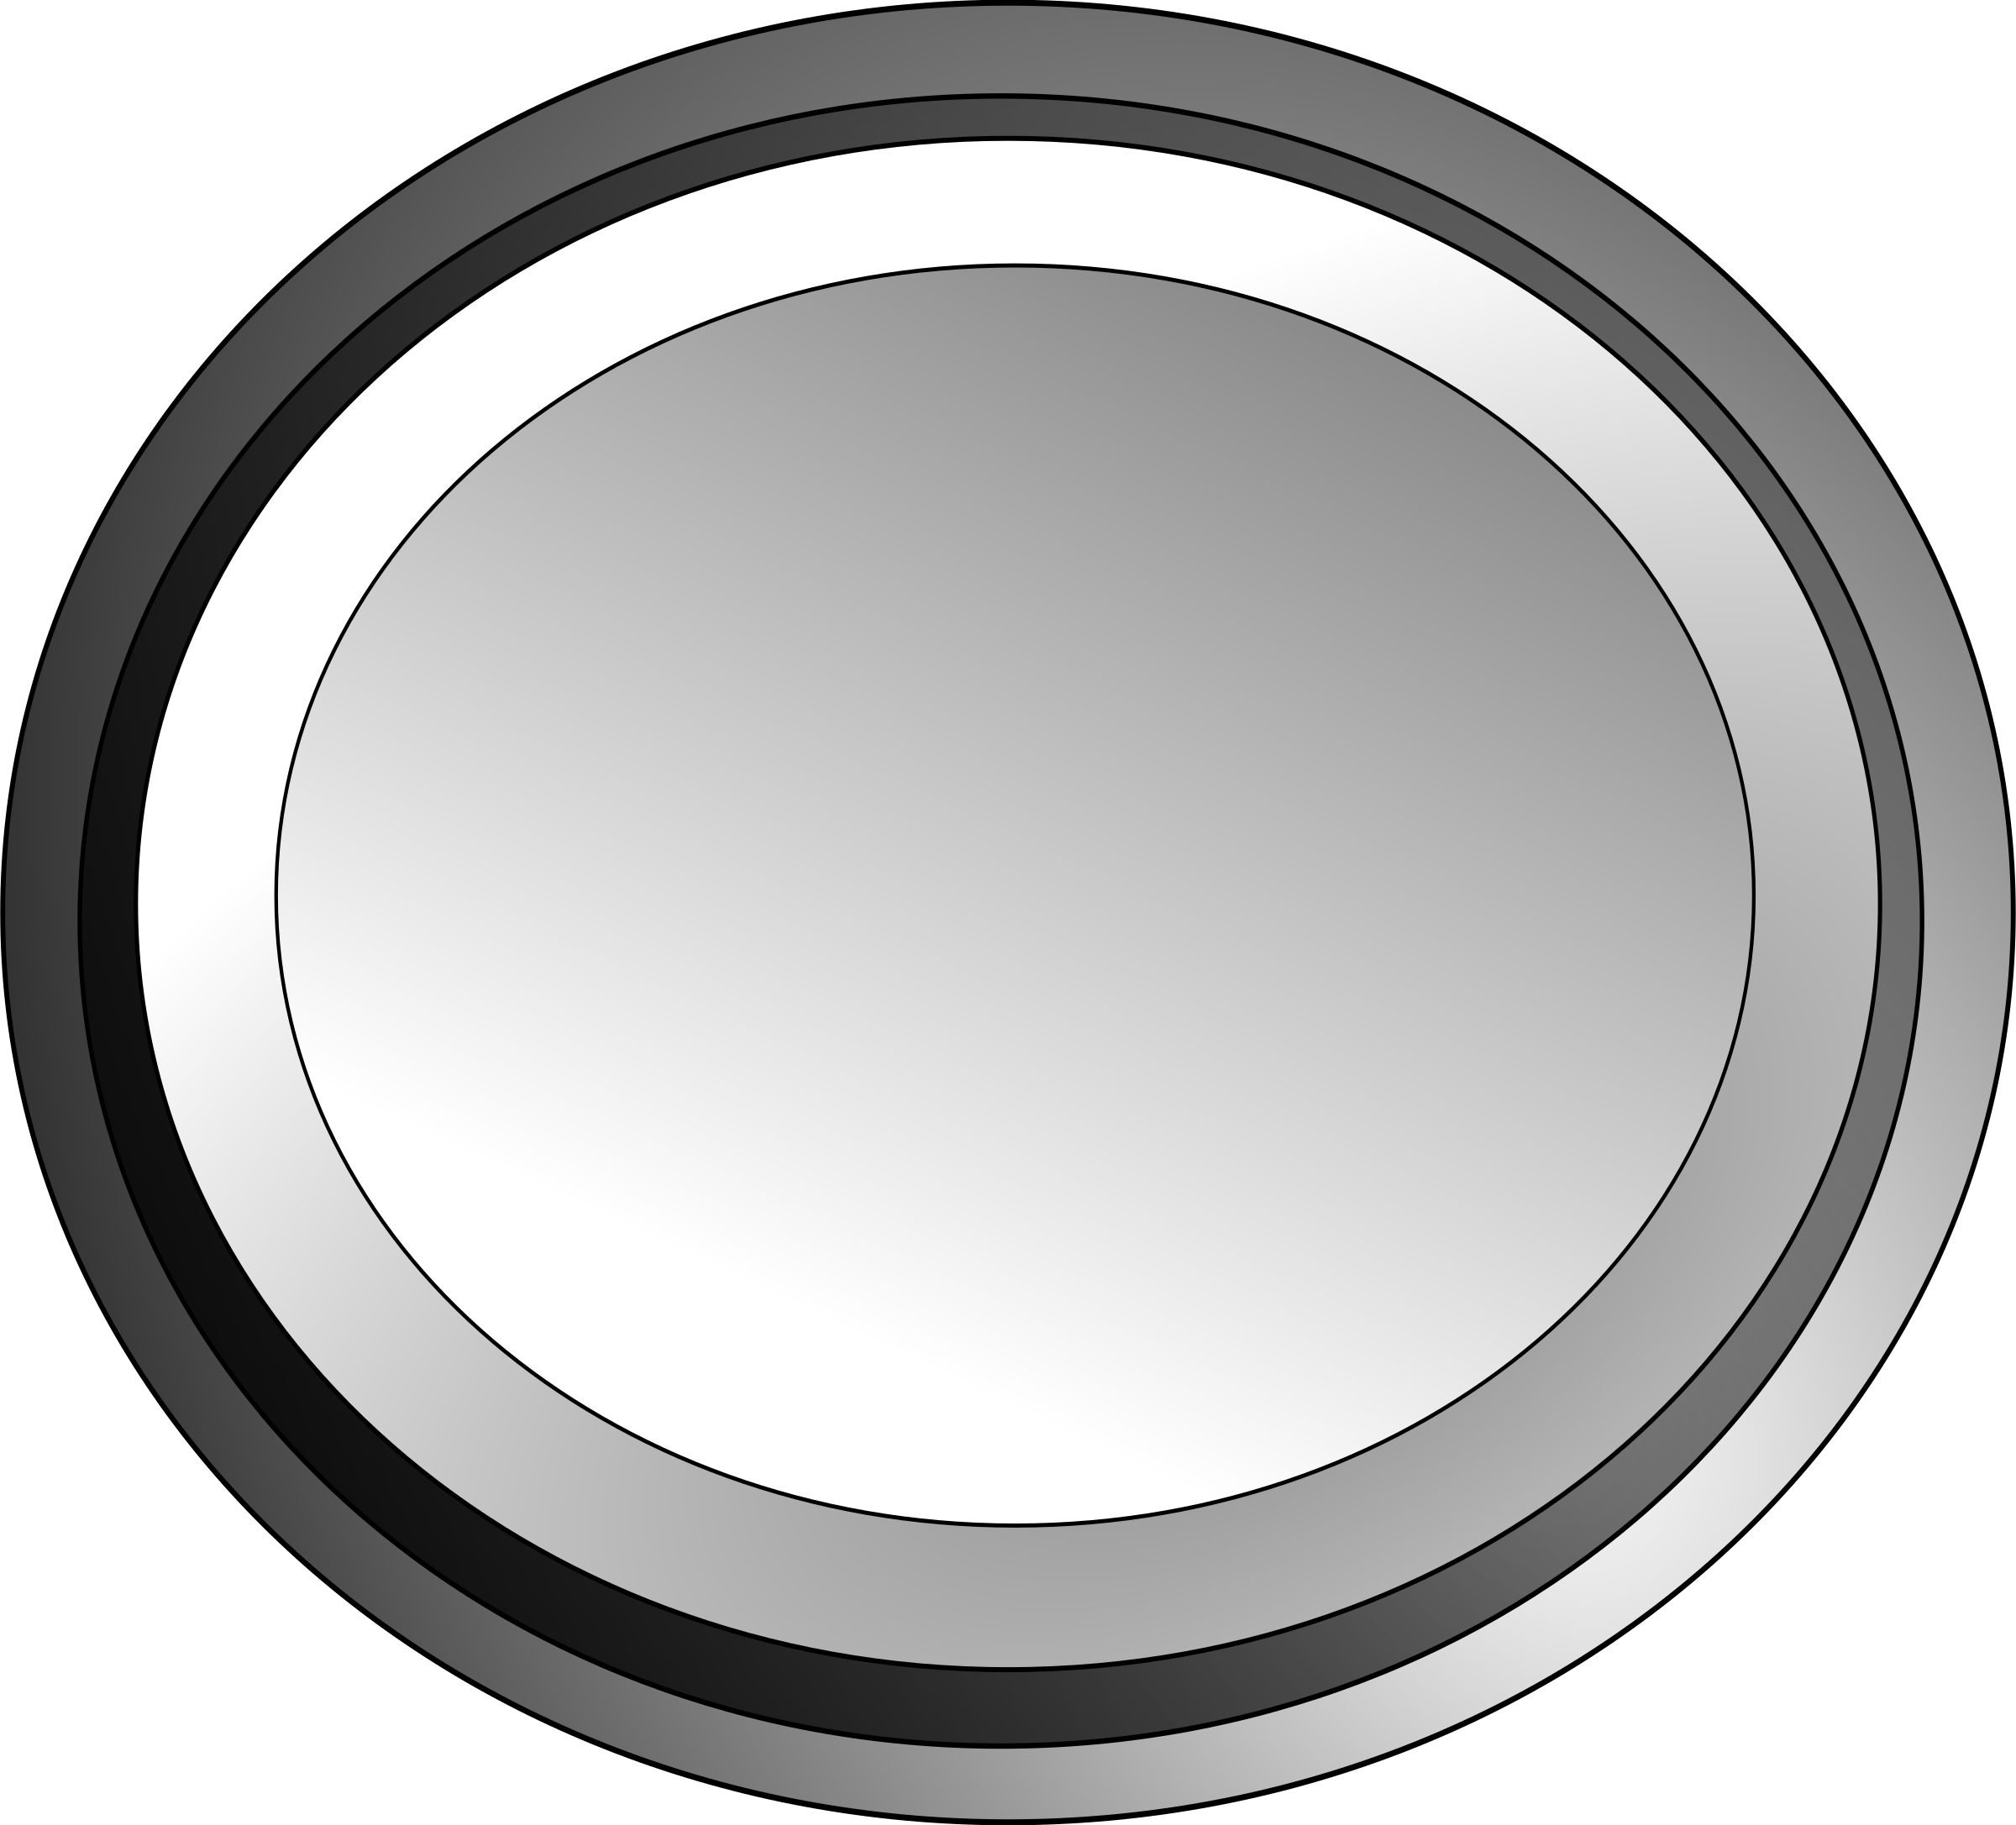 18 White Button Icon.png Images - Computer Power Button ...